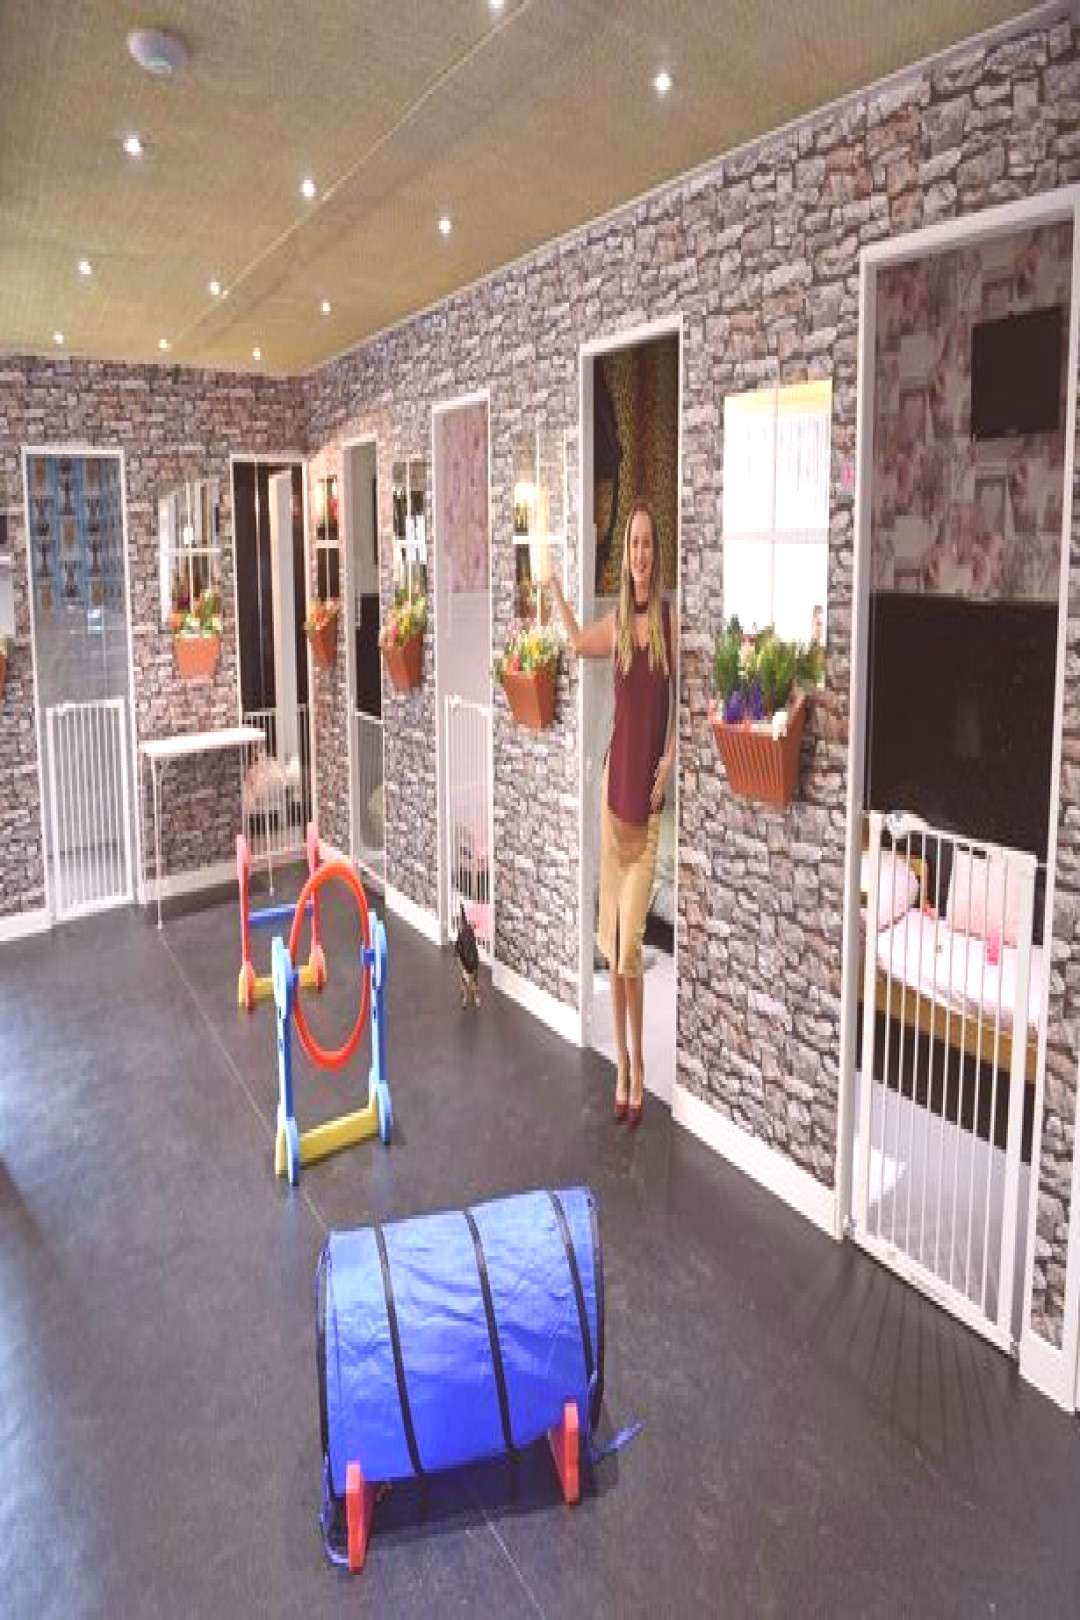 First look inside luxury dog hotel with HDTVs in every bedroom - Liverpool Echo